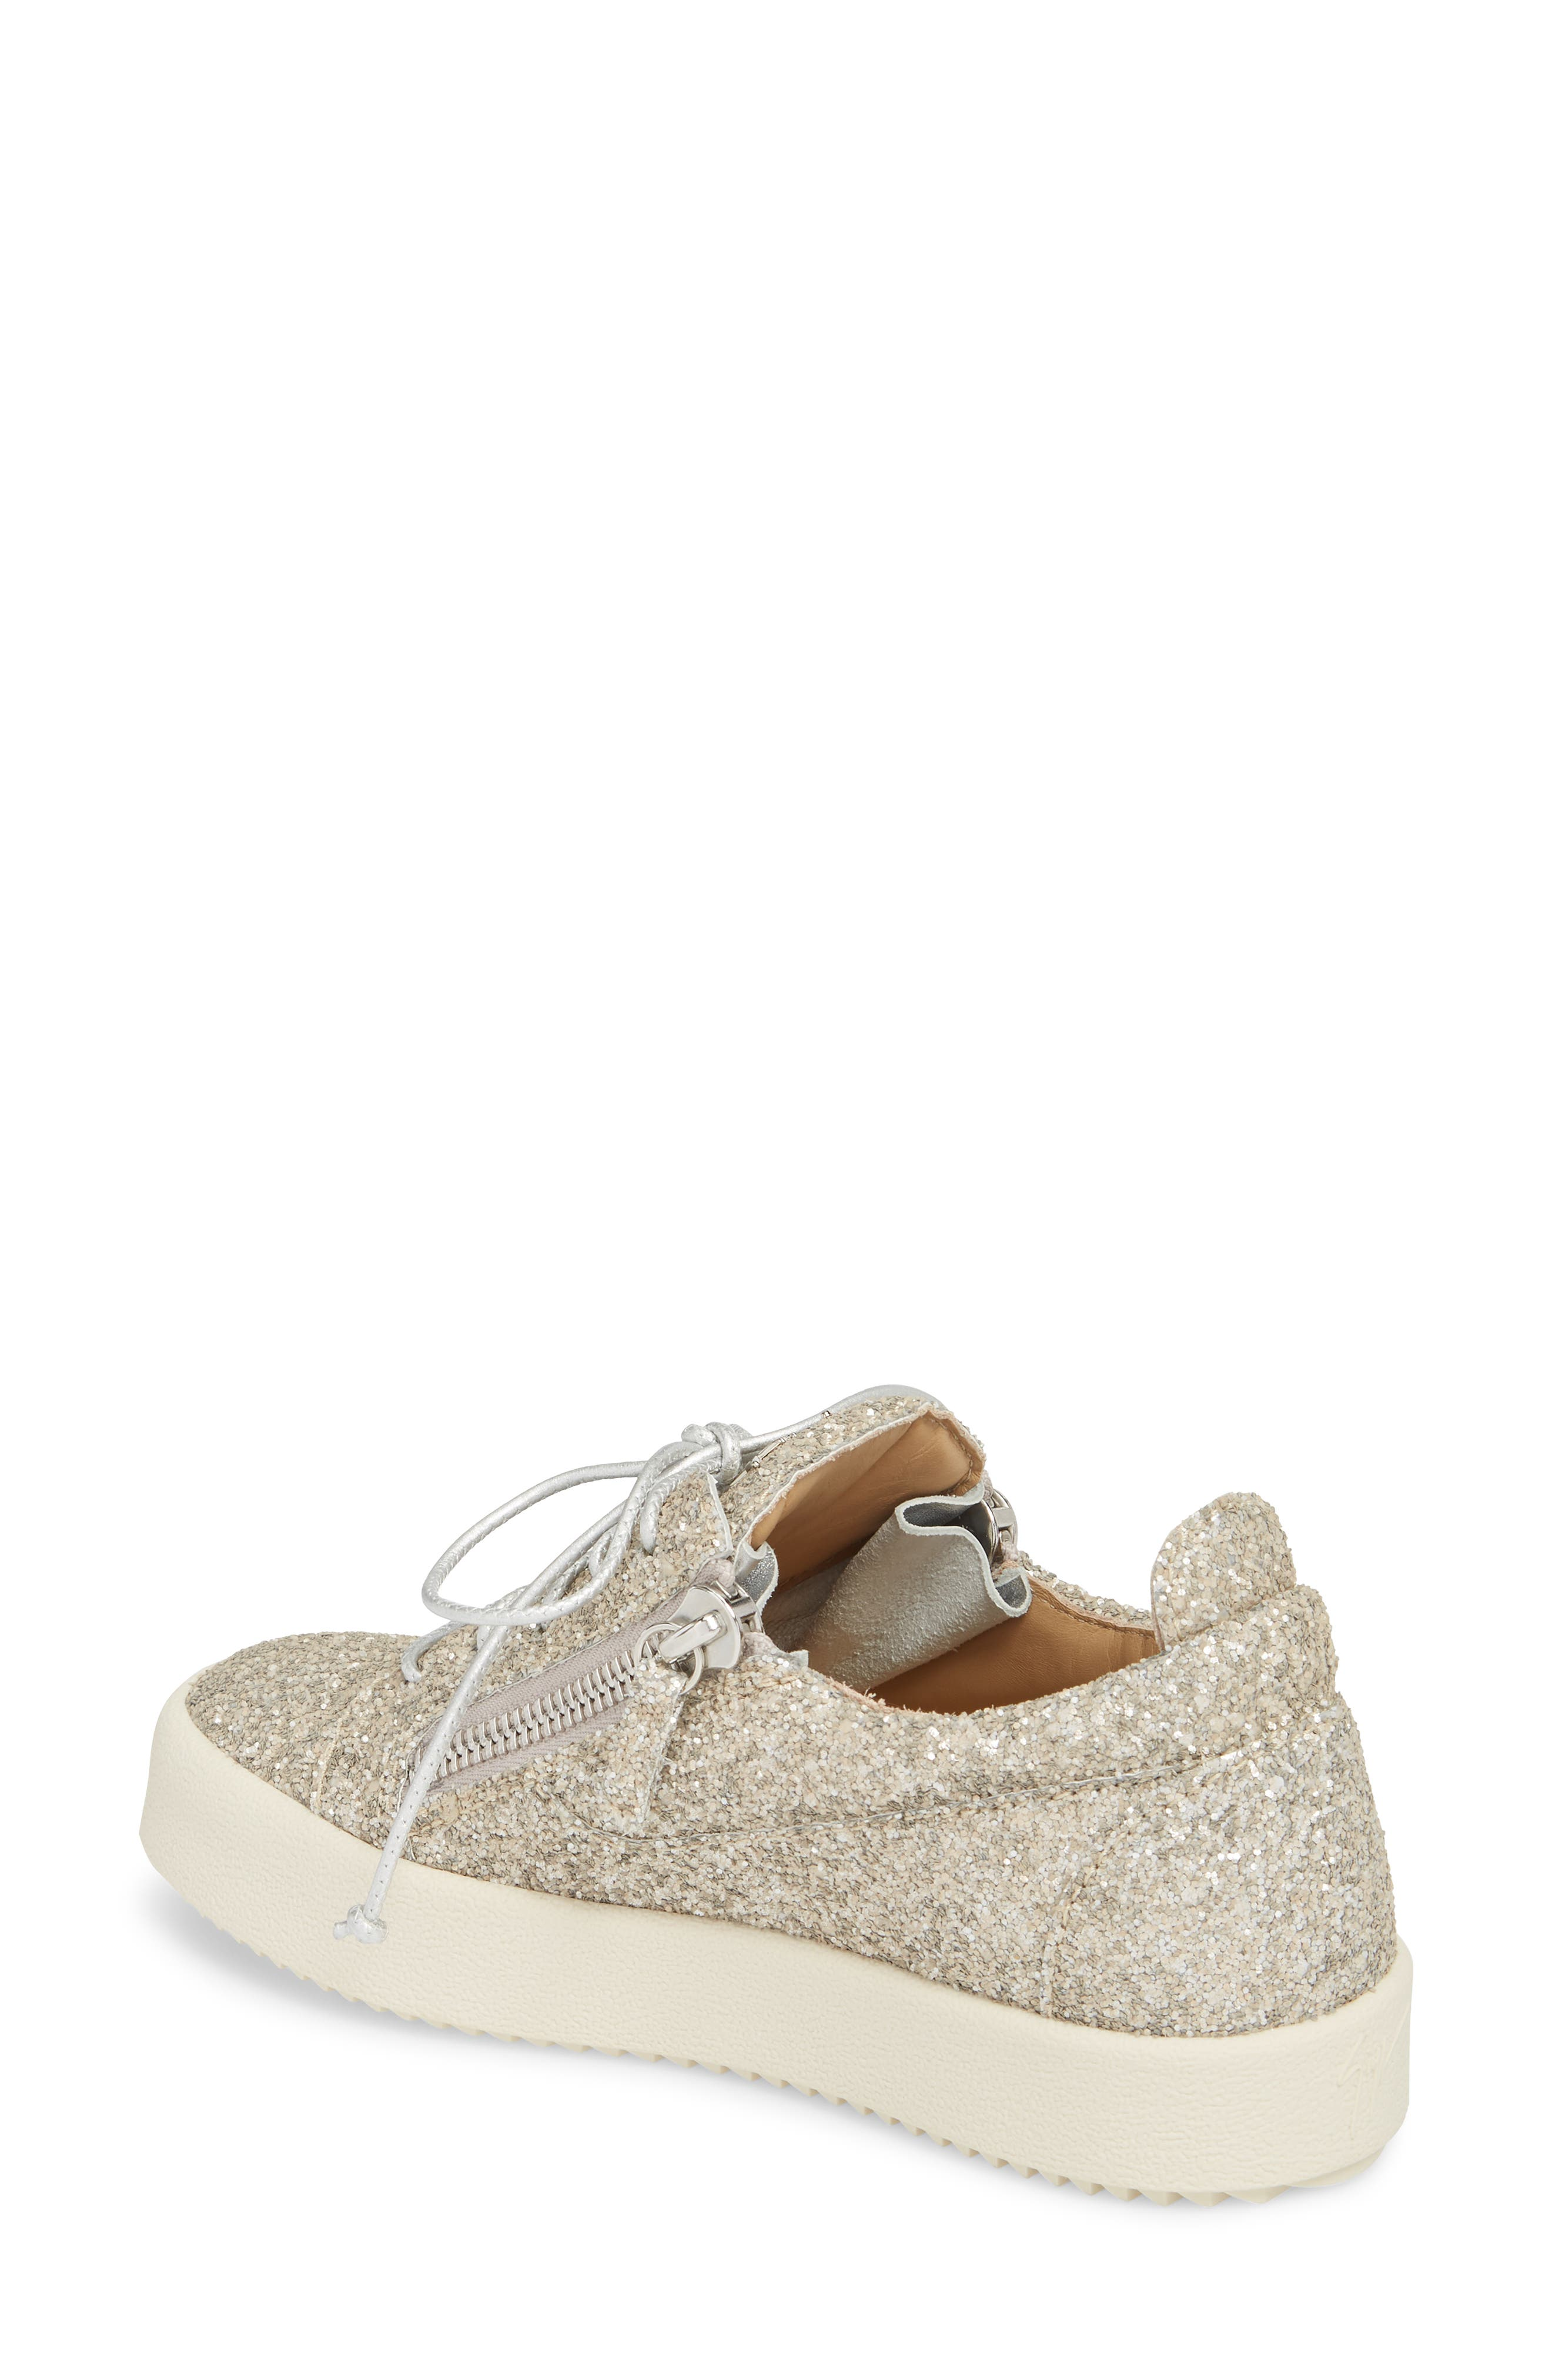 May London Low Top Sneaker,                             Alternate thumbnail 2, color,                             Champagne